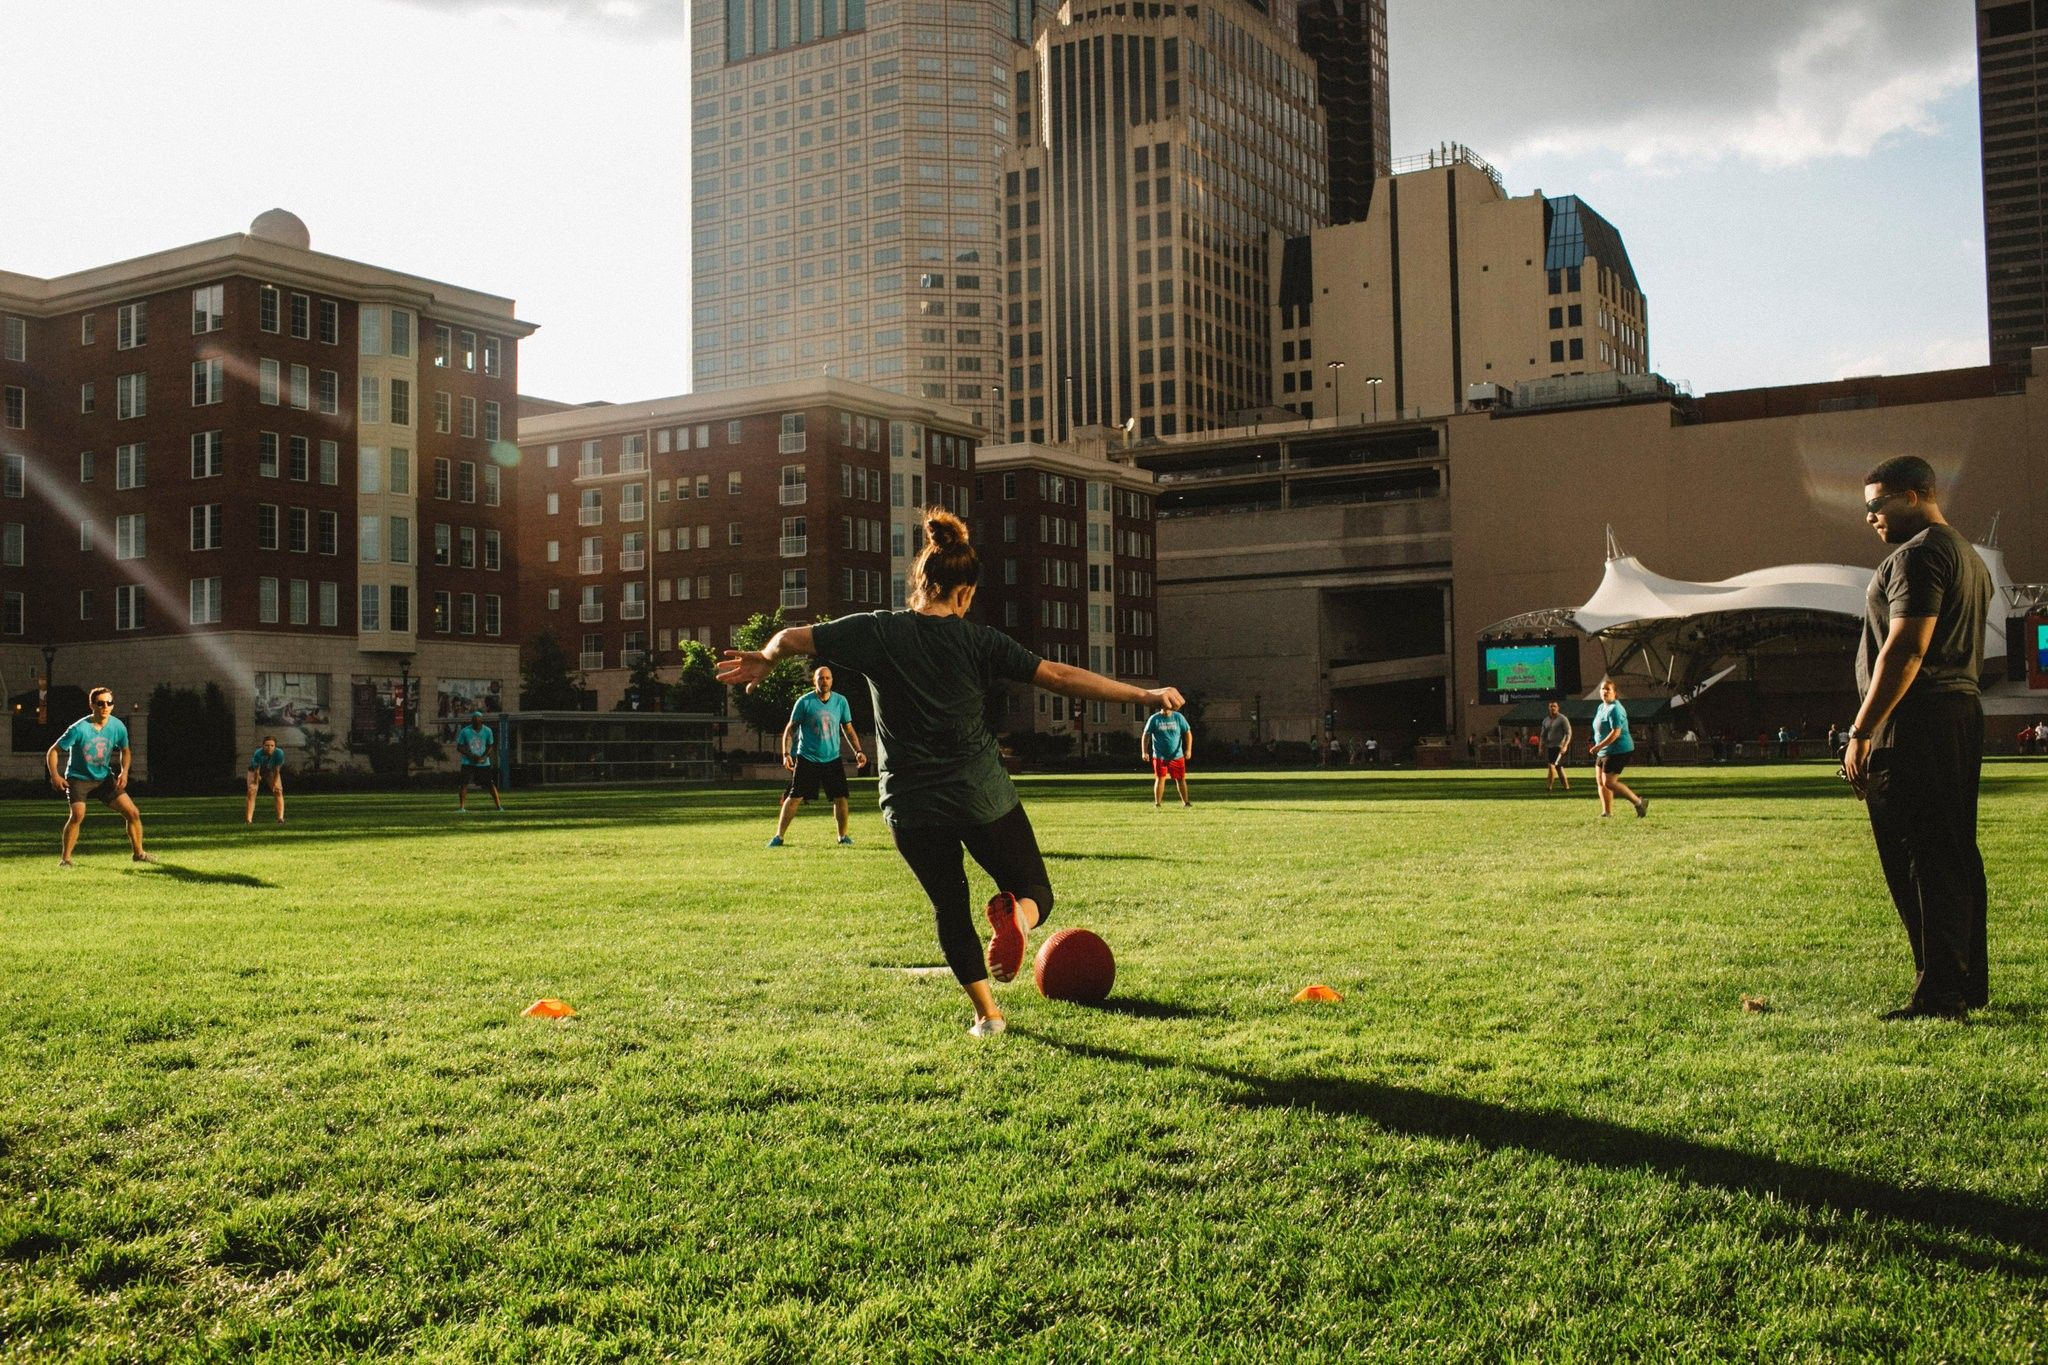 Open Spaces Bring Light to Downtown Columbus (With images